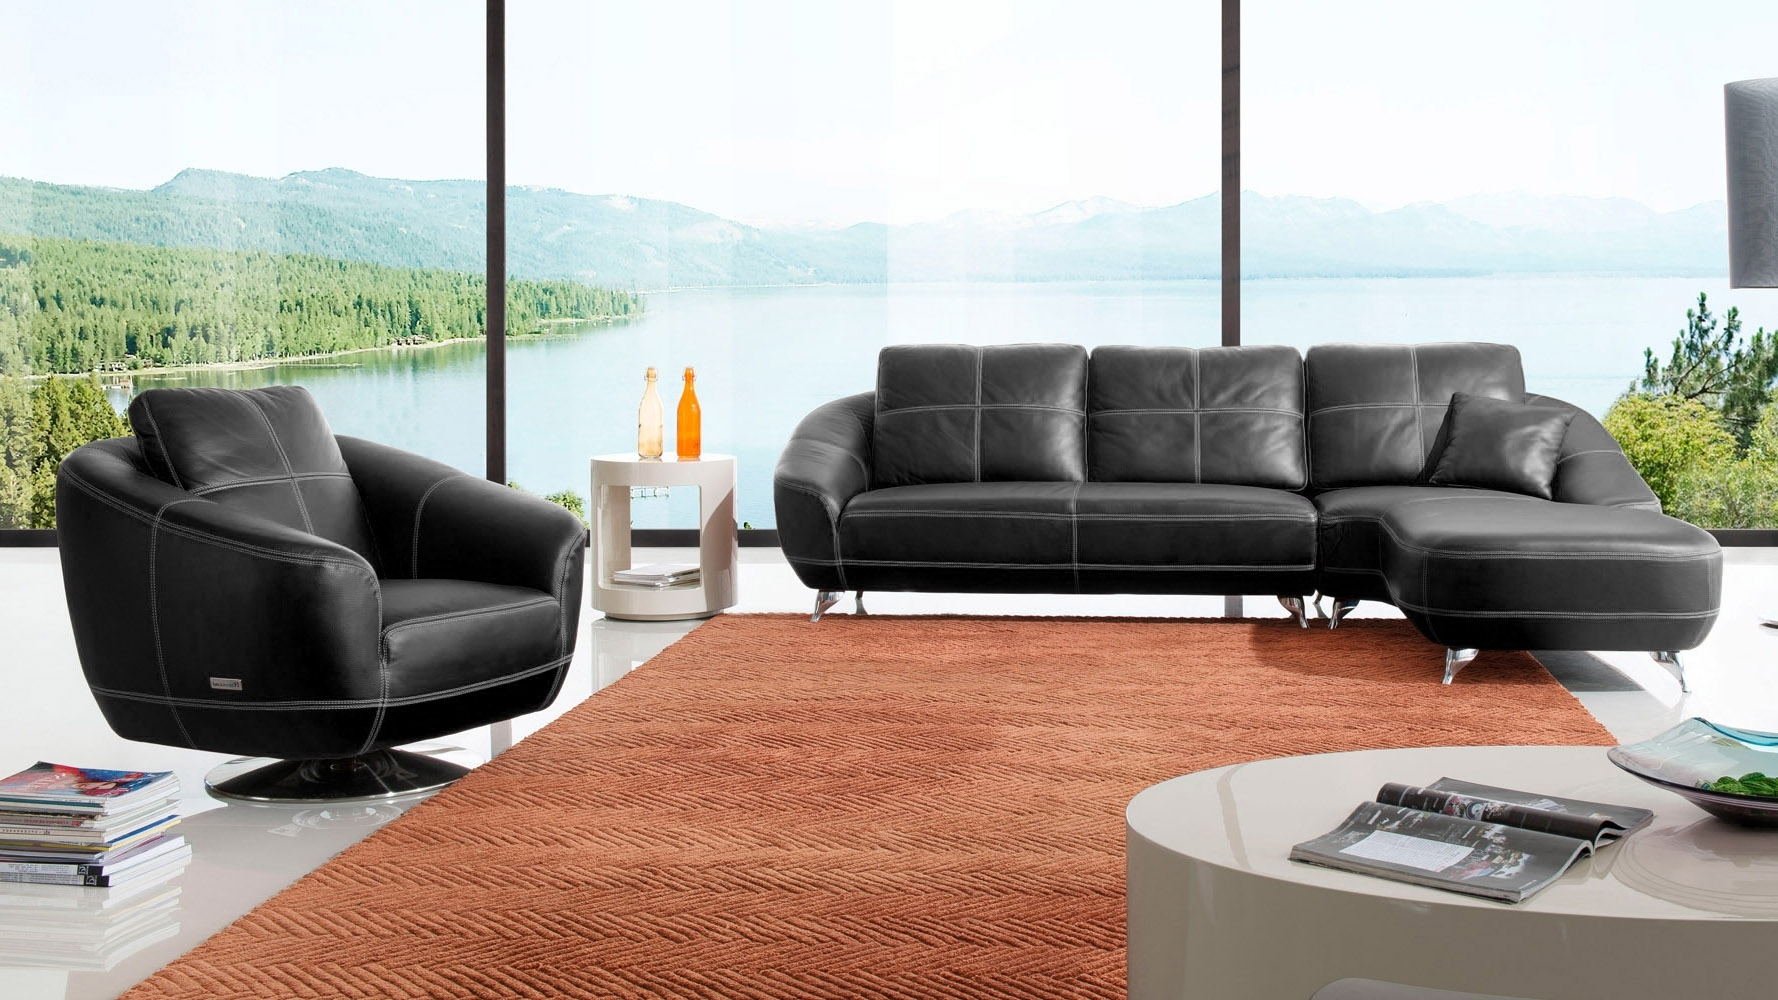 Home Lucy 2 Seater Leather Effect Sofa Bed Black - Sofa Designs throughout Lucy Dark Grey 2 Piece Sleeper Sectionals With Laf Chaise (Image 11 of 30)